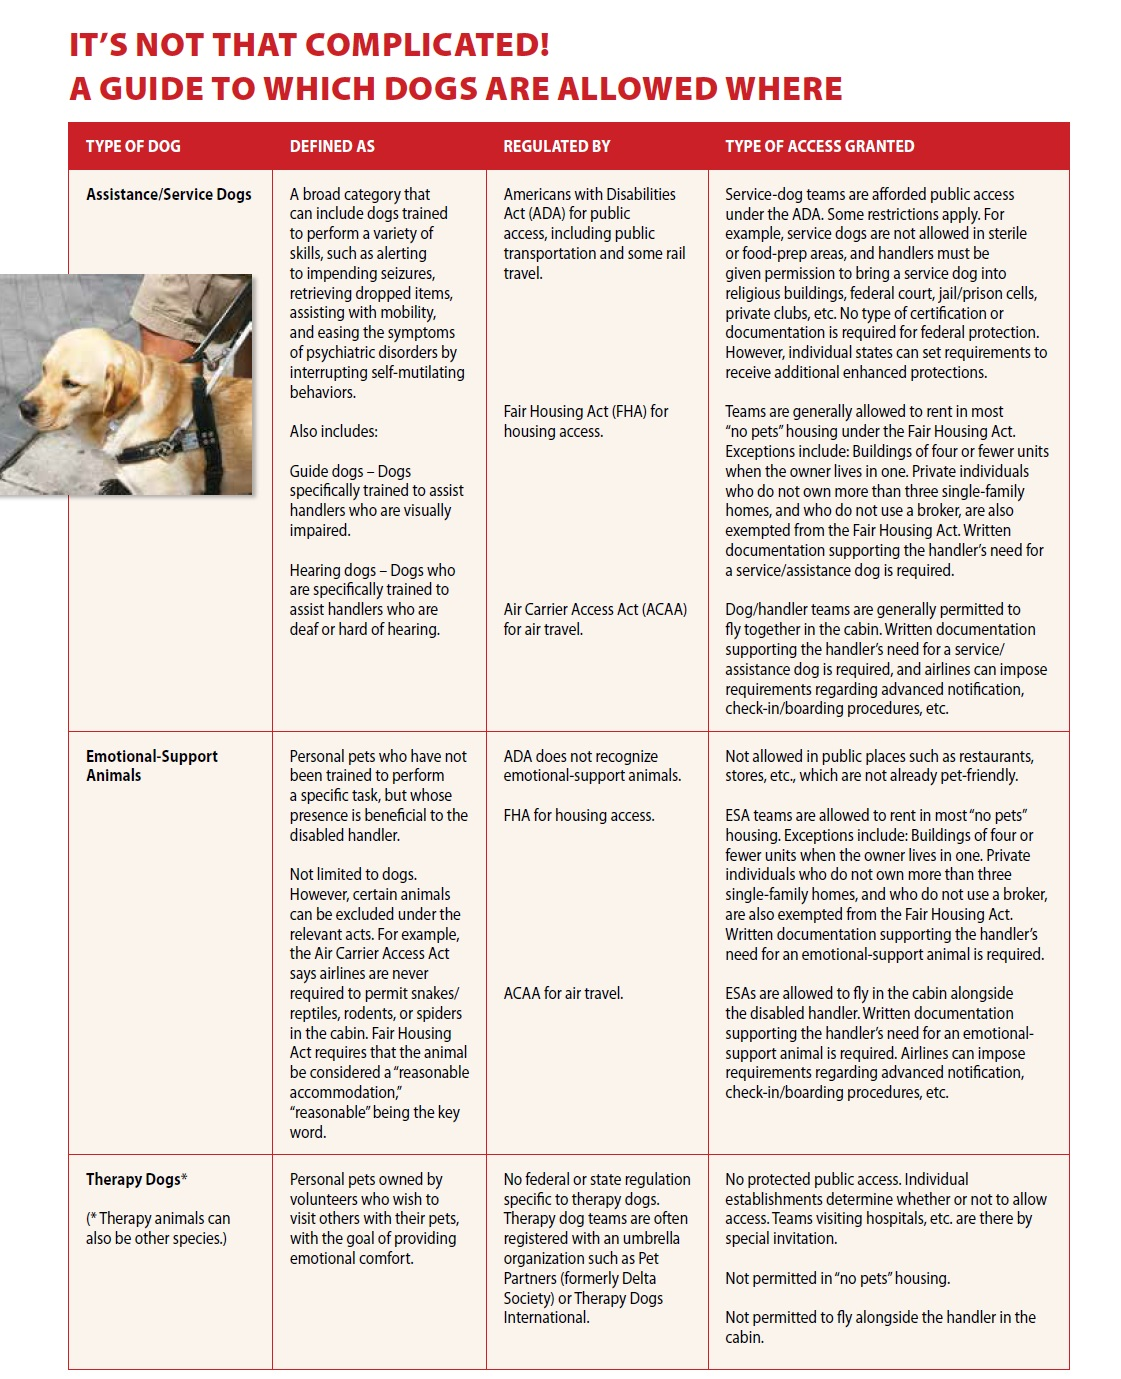 Service Dogs And People With Real Disabilities